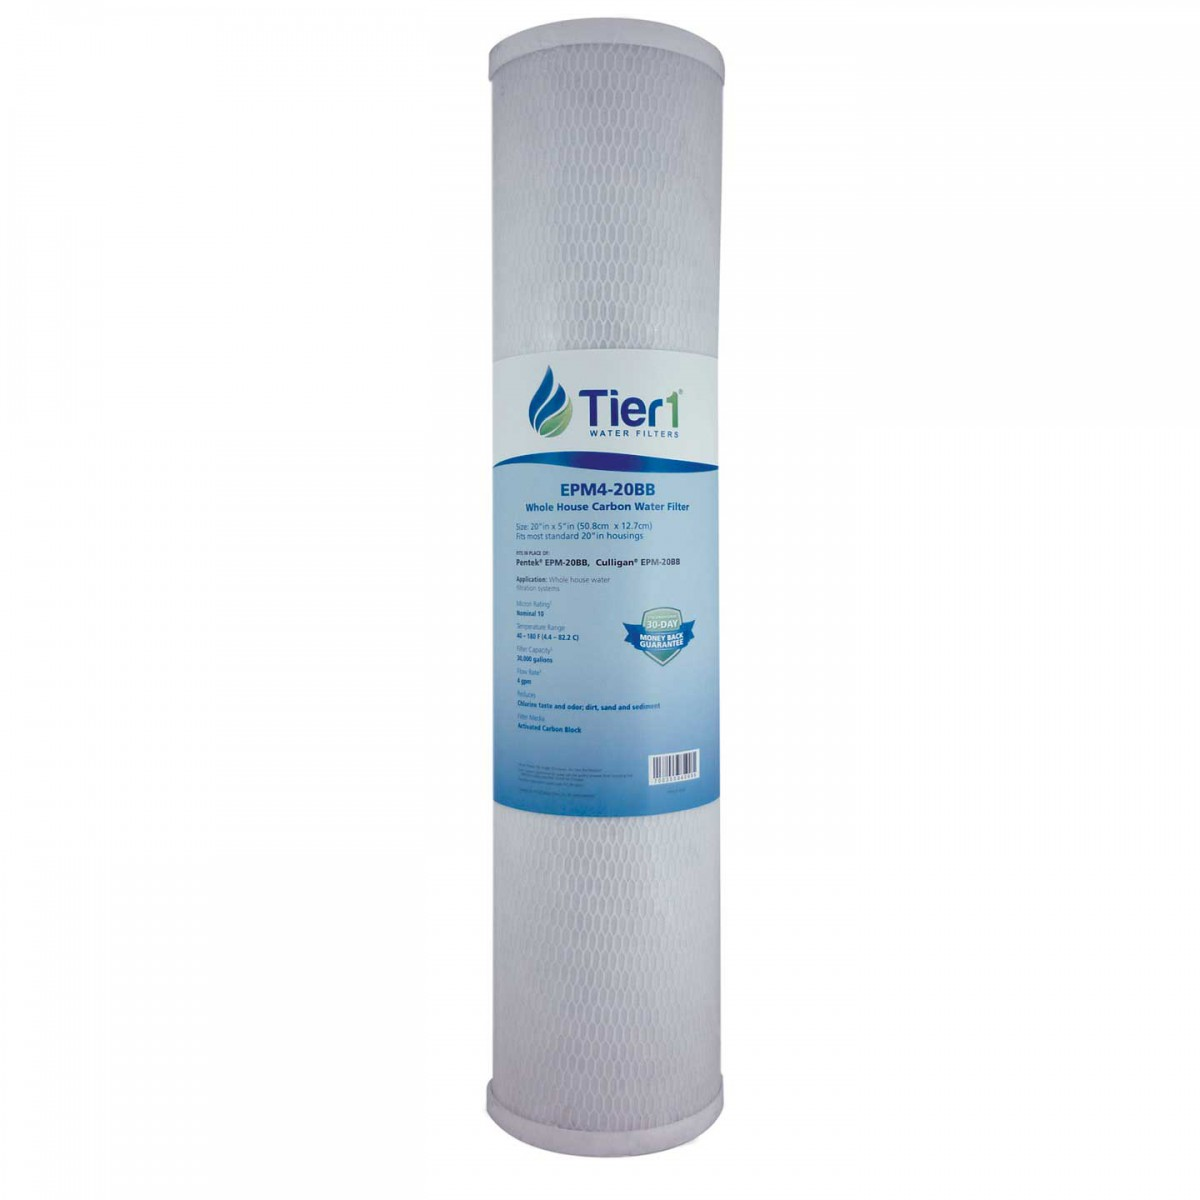 culligan whole house water filter. 20 X 4.5 Carbon Block Replacement Filter By Tier1 (10 Micron) Culligan Whole House Water